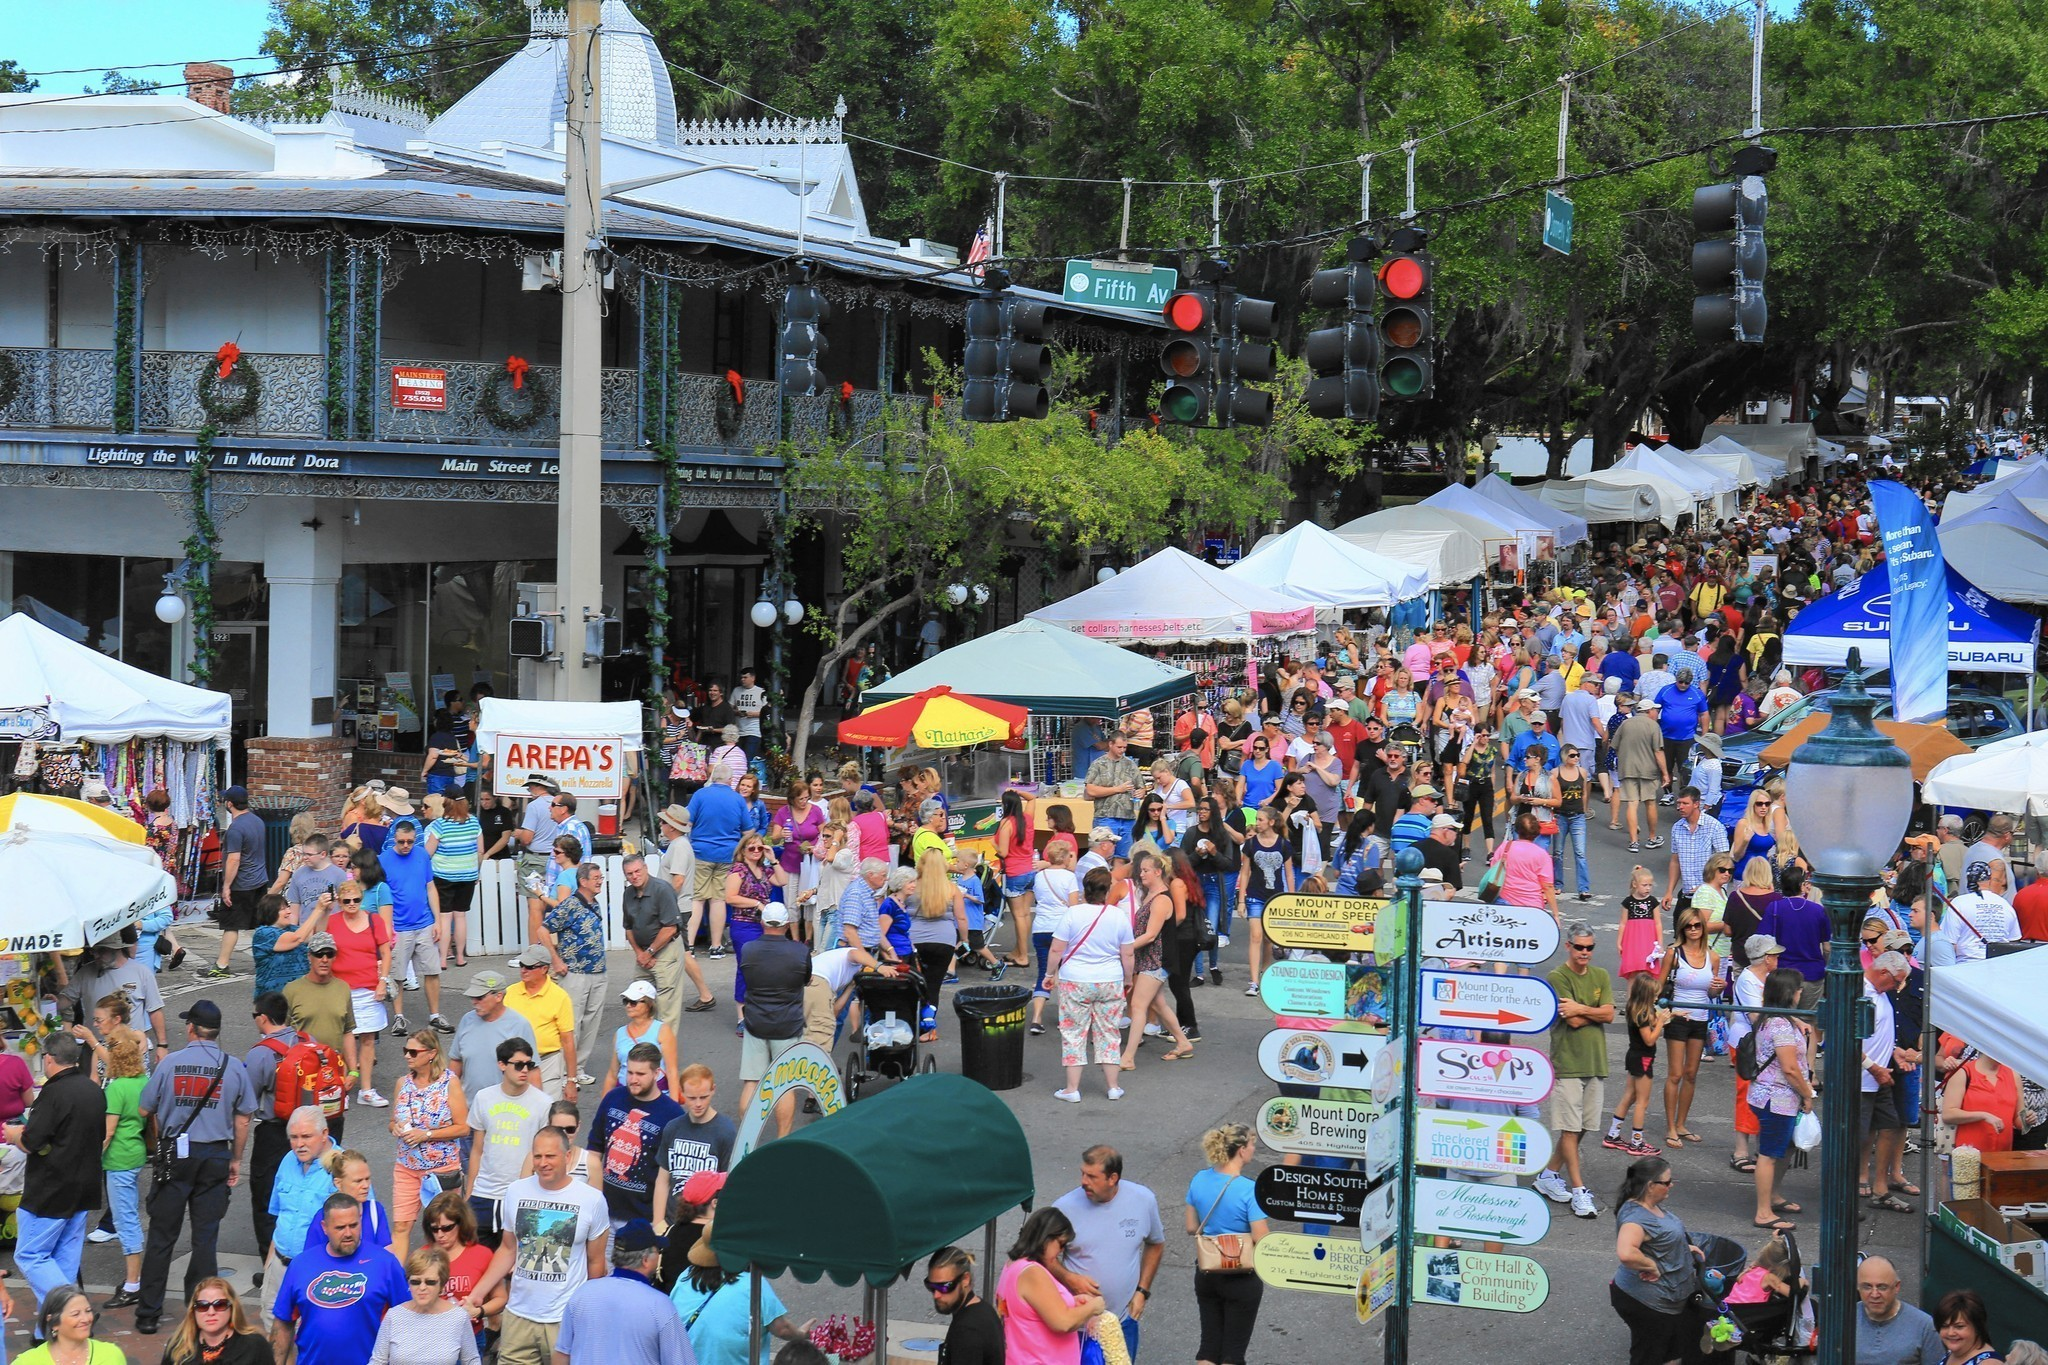 Mt Dora Craft Festival